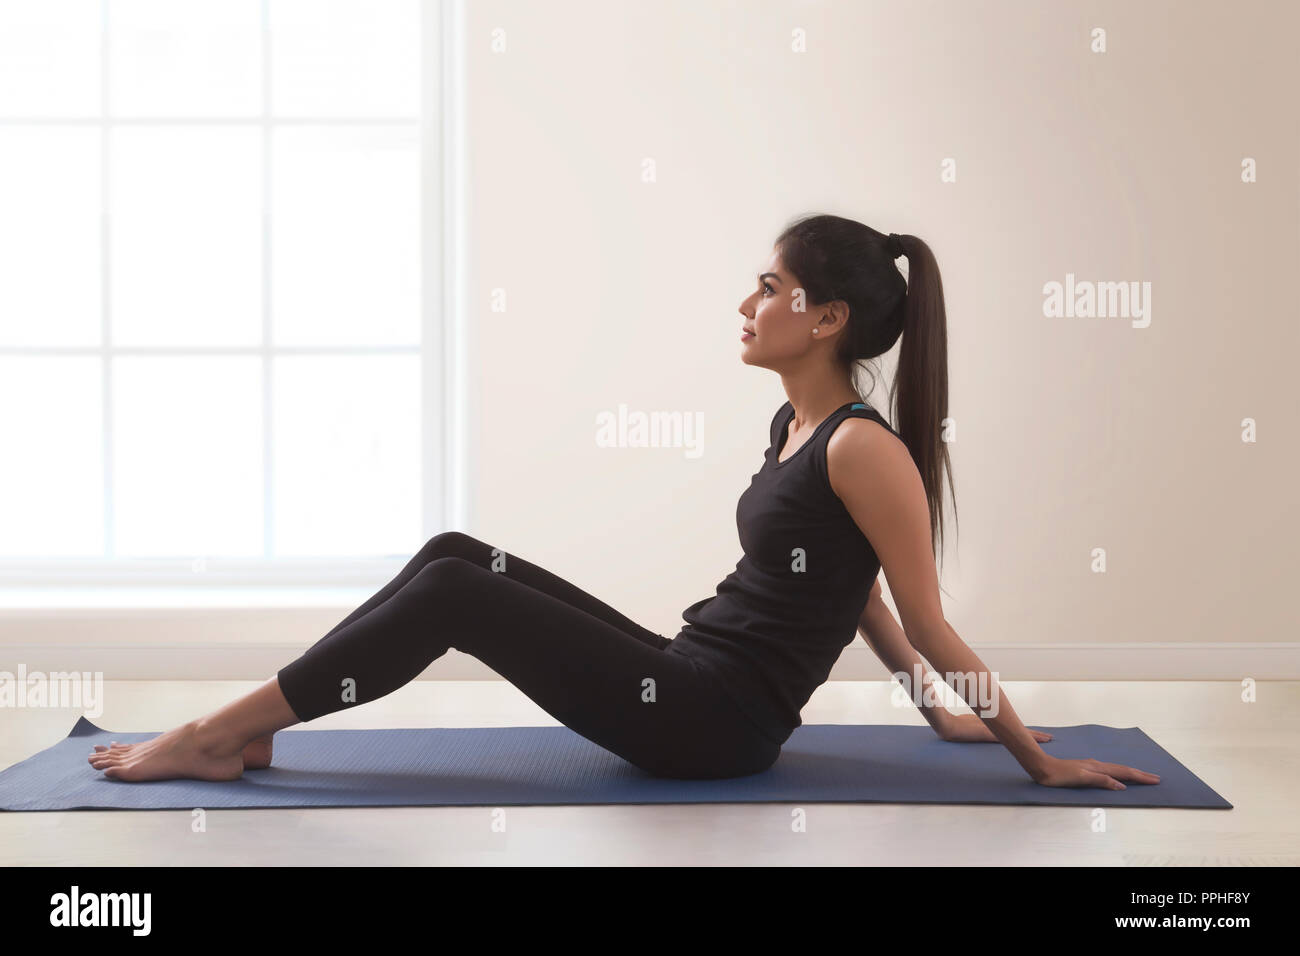 Young fitness woman in workout clothes doing yoga on yoga mat. - Stock Image